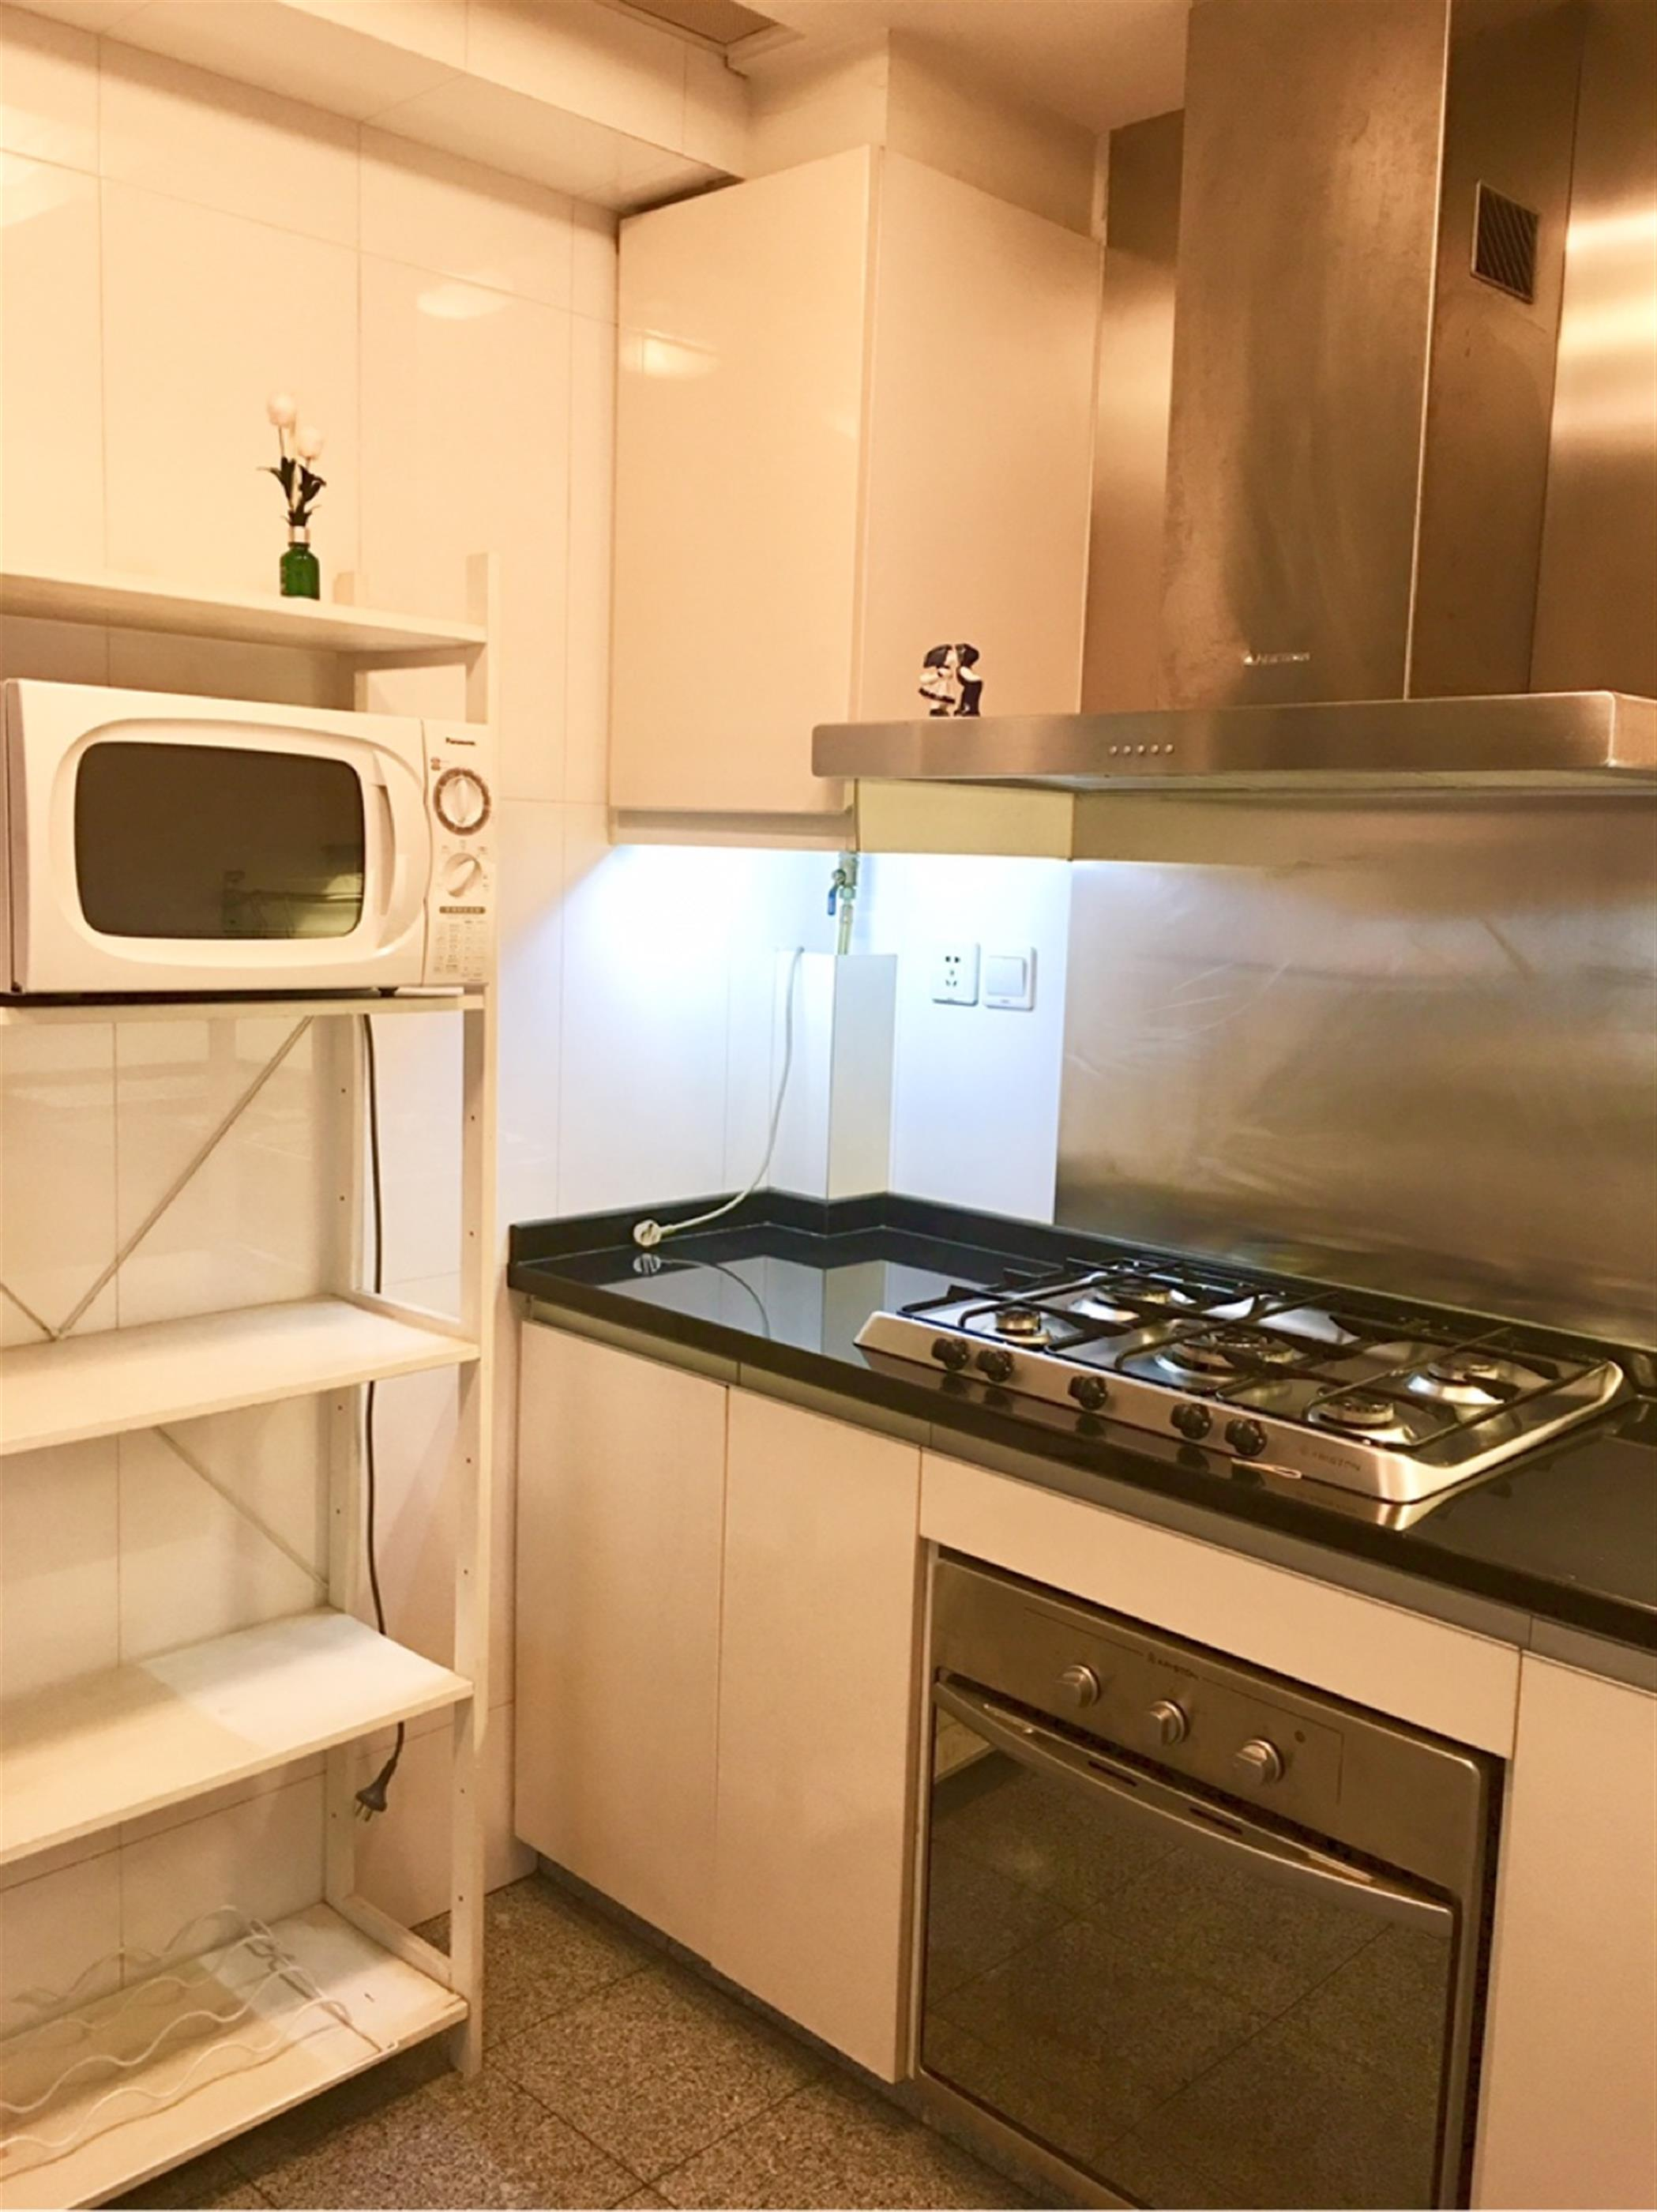 oven Large Comfortable 2BR One Park Ave Apt for Rent in Shanghai Jing'an Near LN 2/7